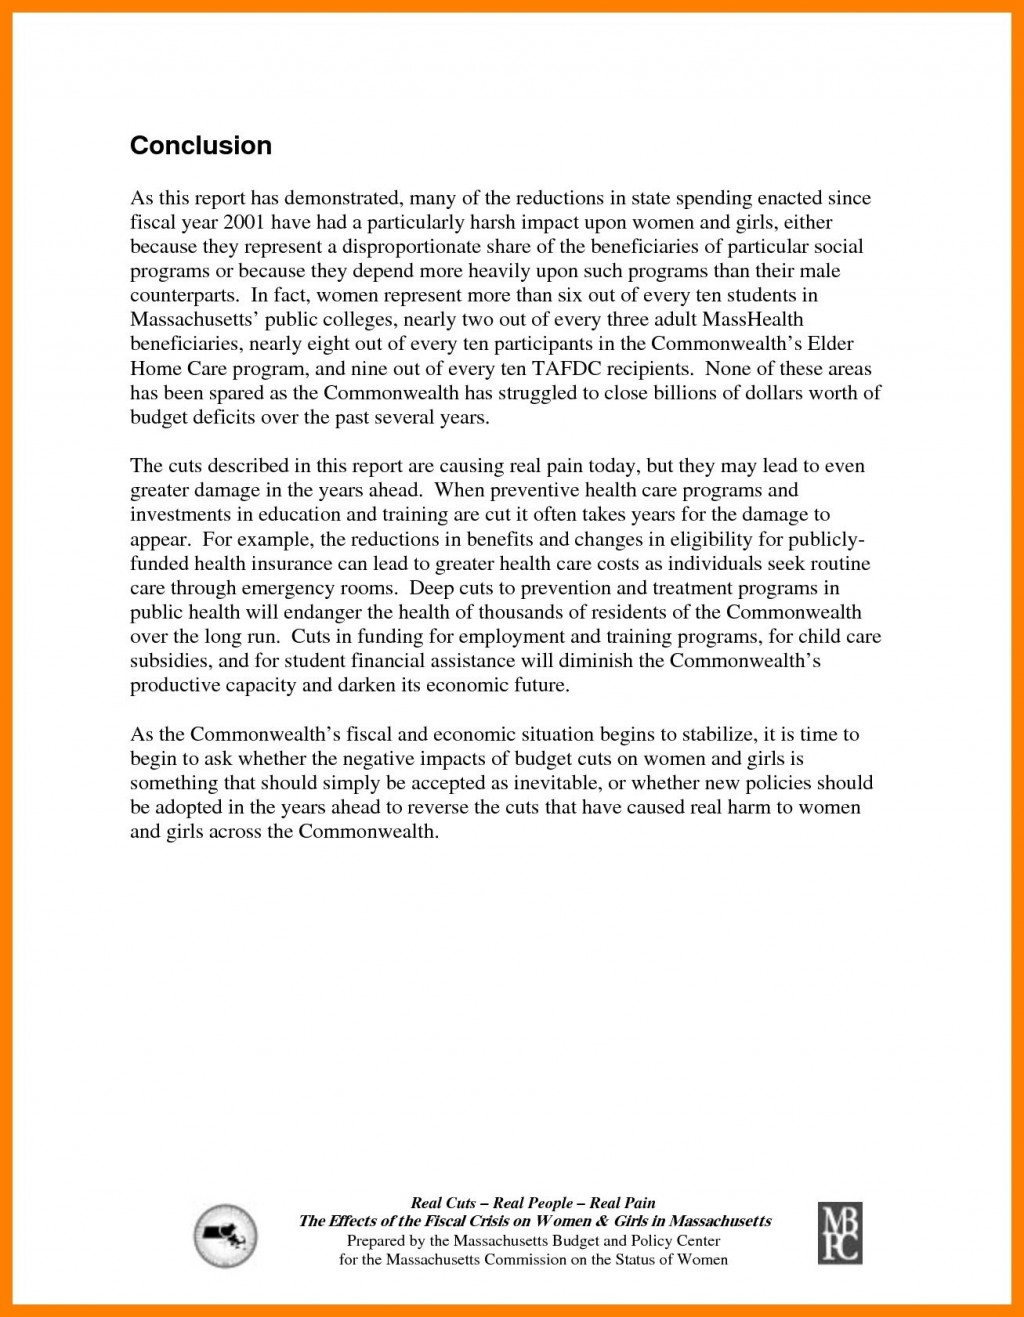 015 Research Paper Example Of Introduction In Conclusion Essay For An Argumentative Pdf Pare And Contrast P About Bullying Psychology Education Unique Business Cyberbullying Large